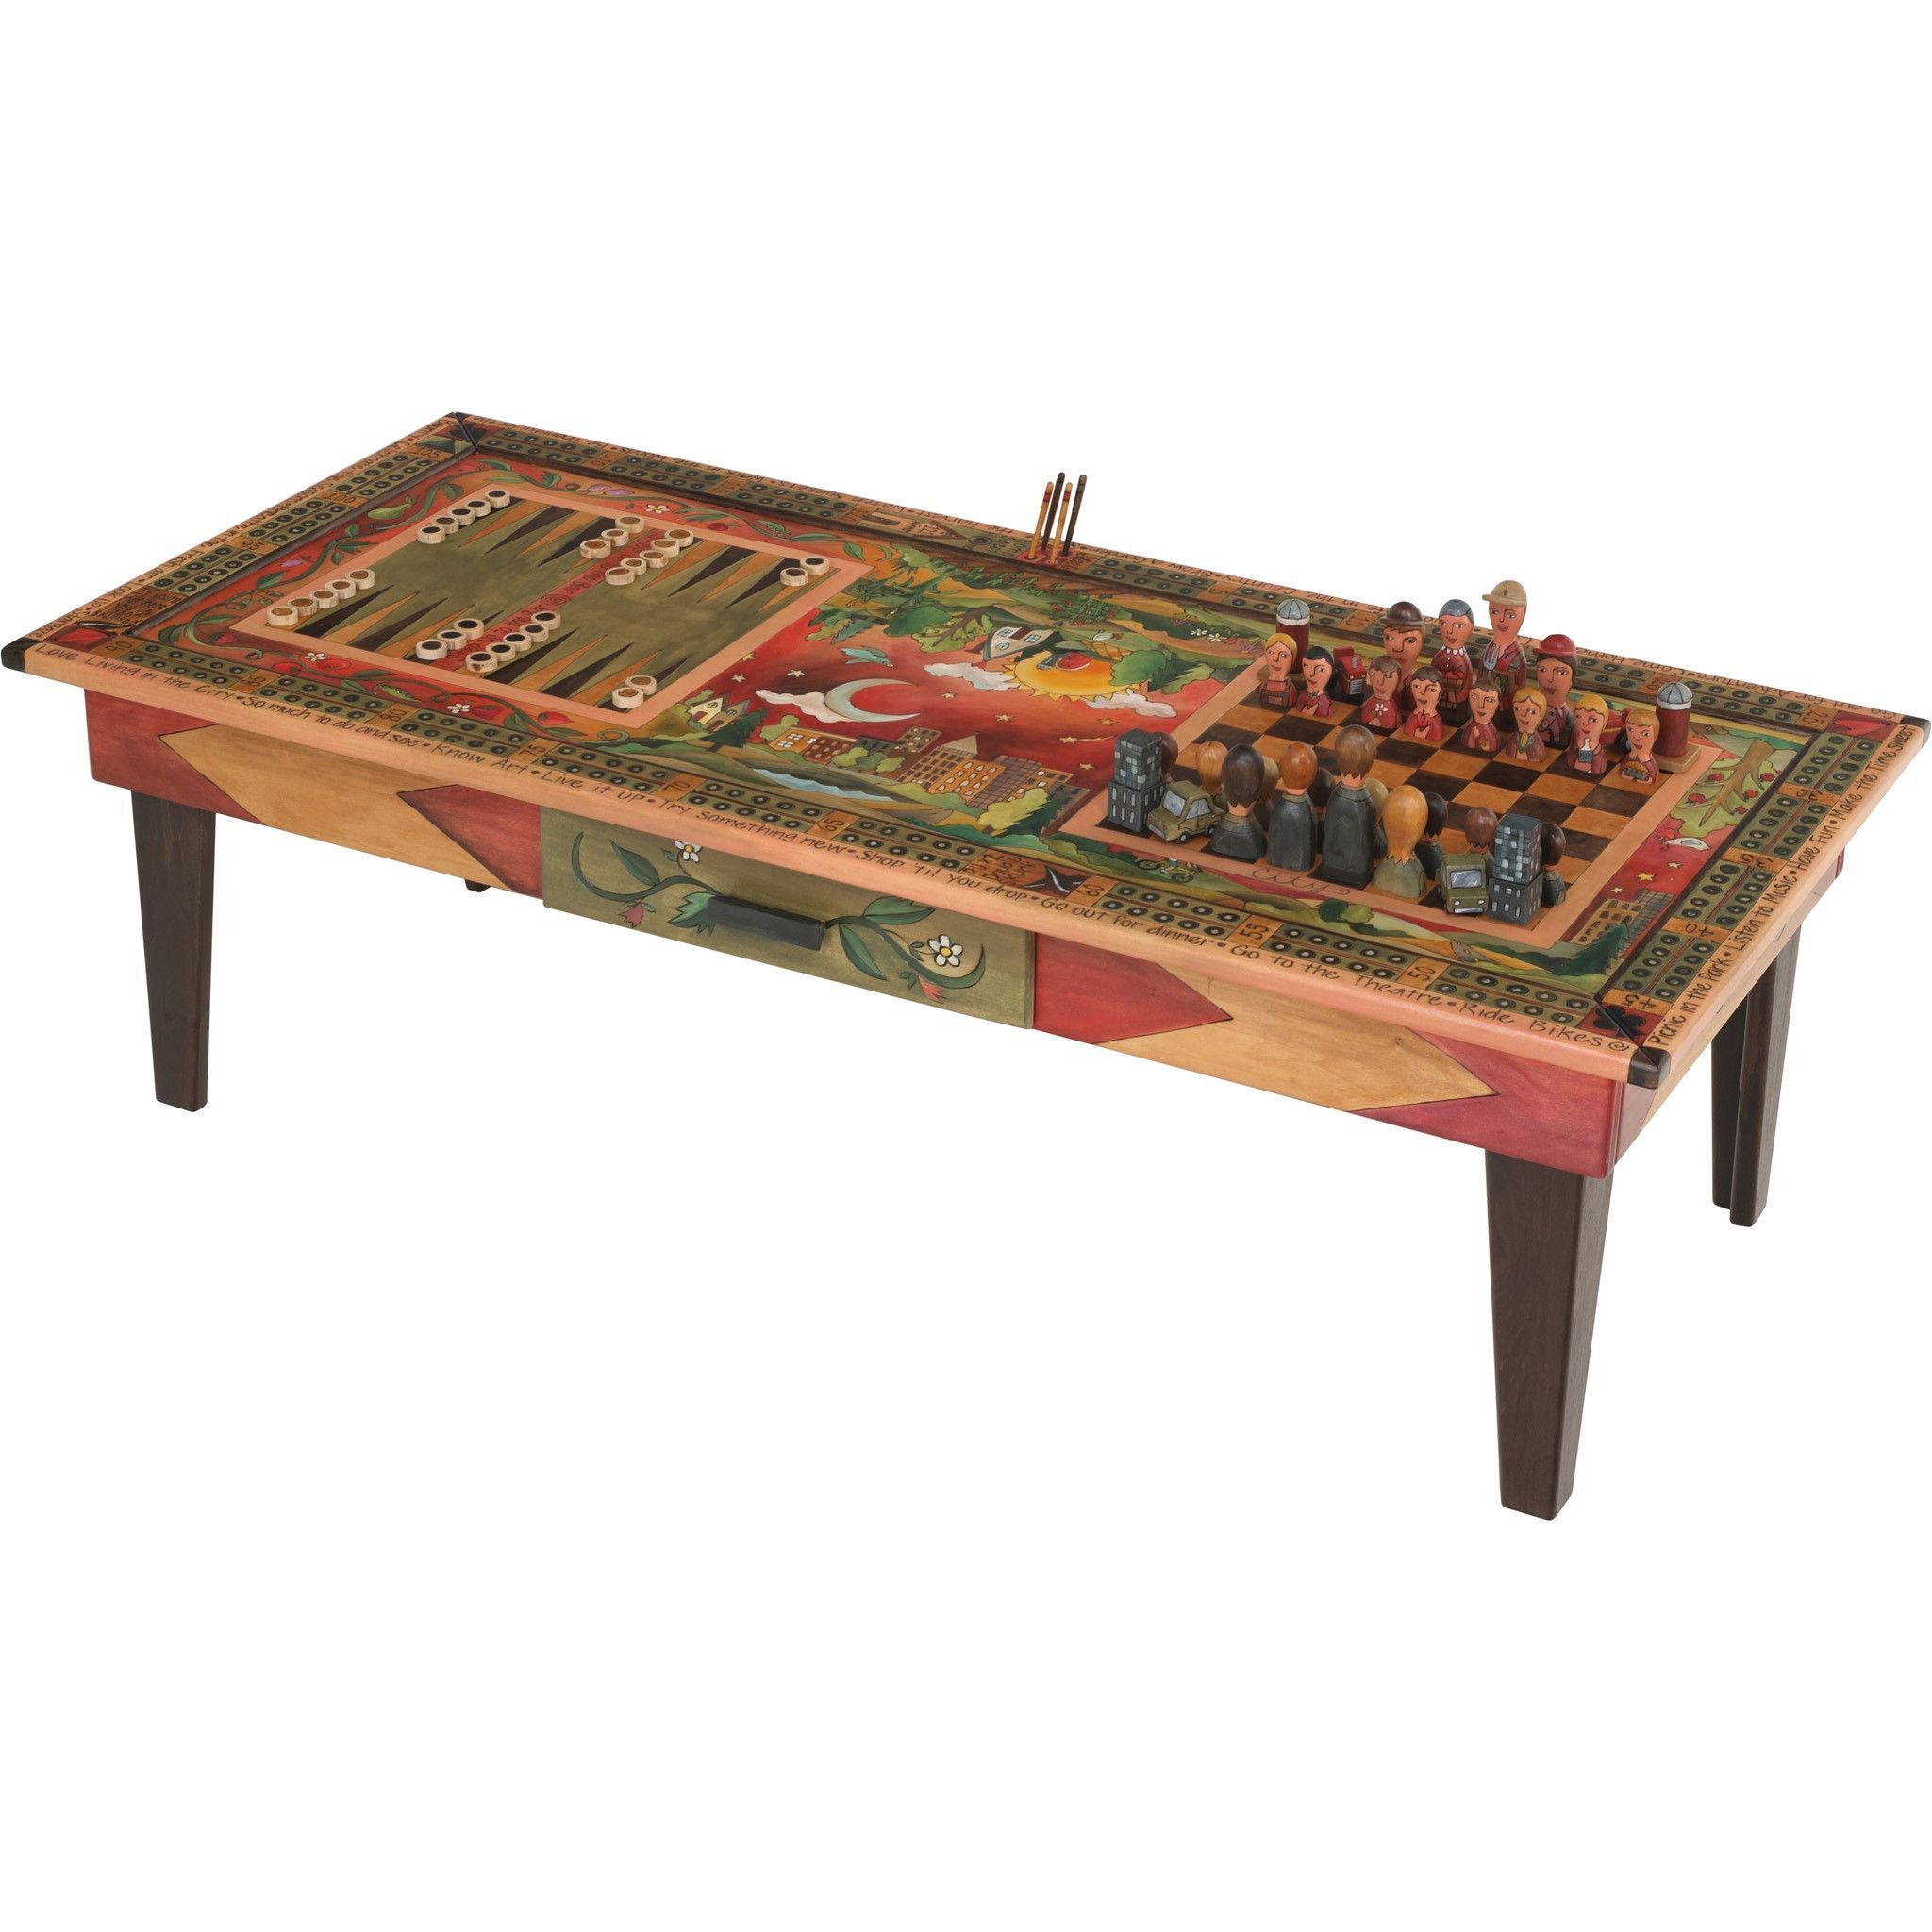 Sticks Urban Game Table with Milled Legs and Country vs City